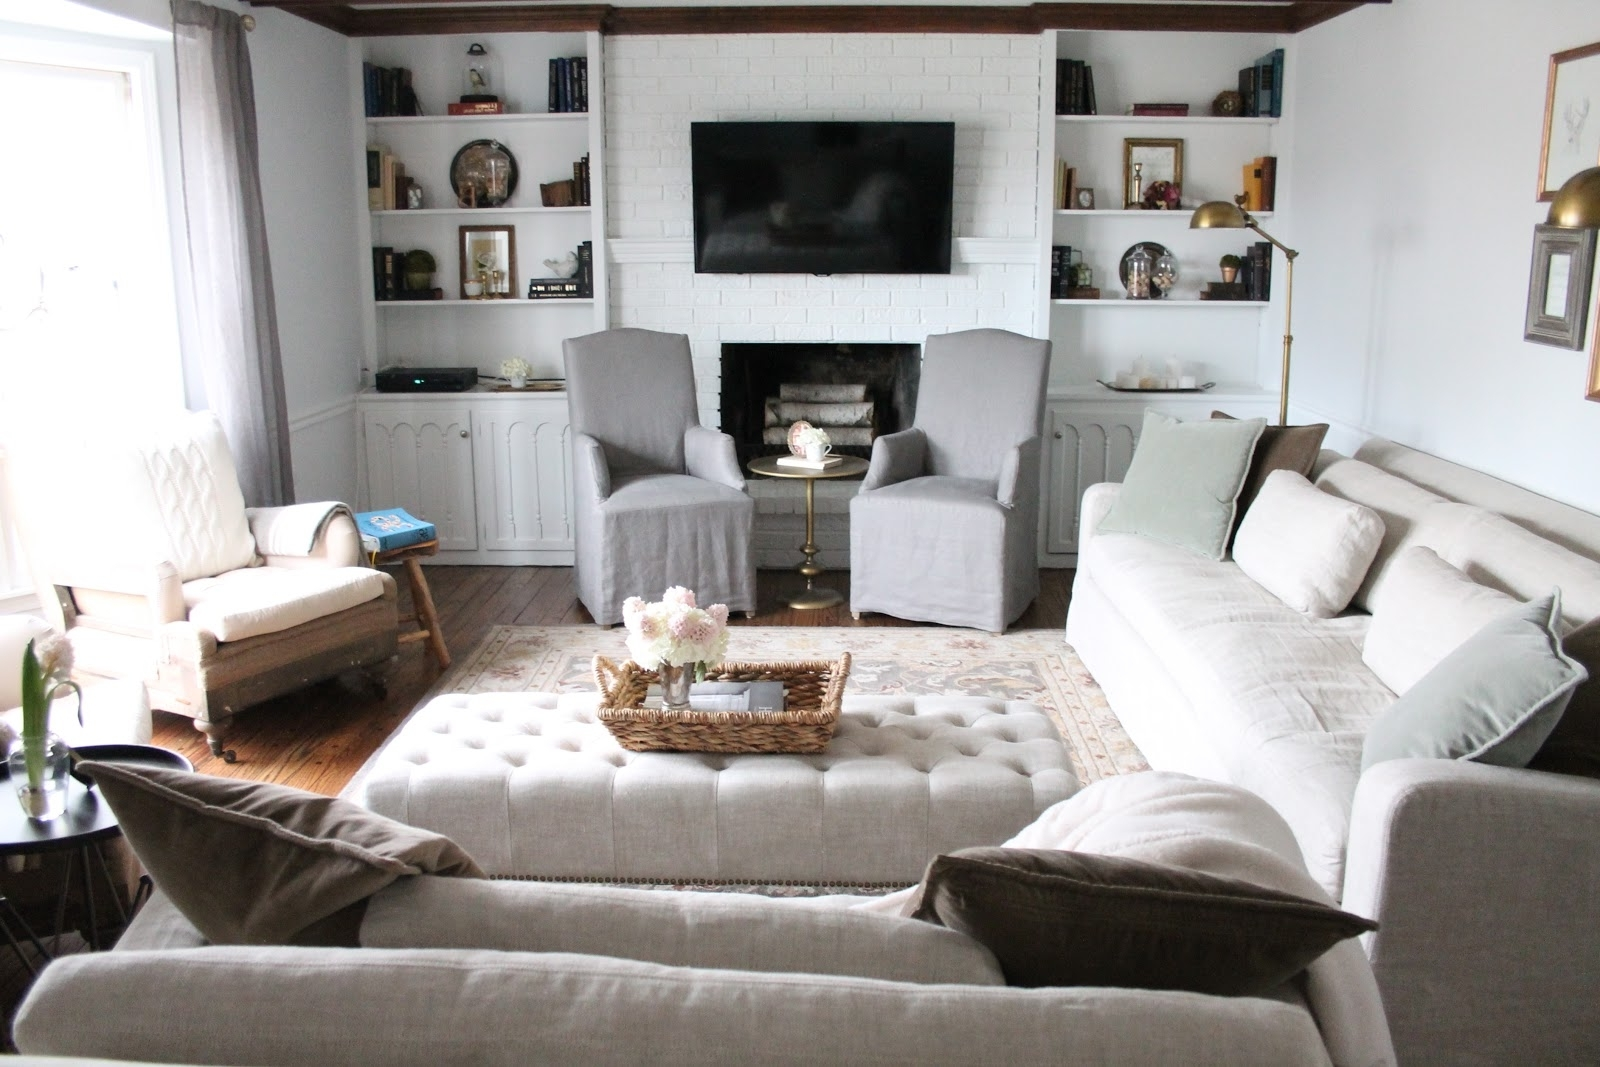 Stunning Restoration Hardware Sectional Ideas – Liltigertoo Throughout Best And Newest Restoration Hardware Sectional Sofas (View 18 of 20)